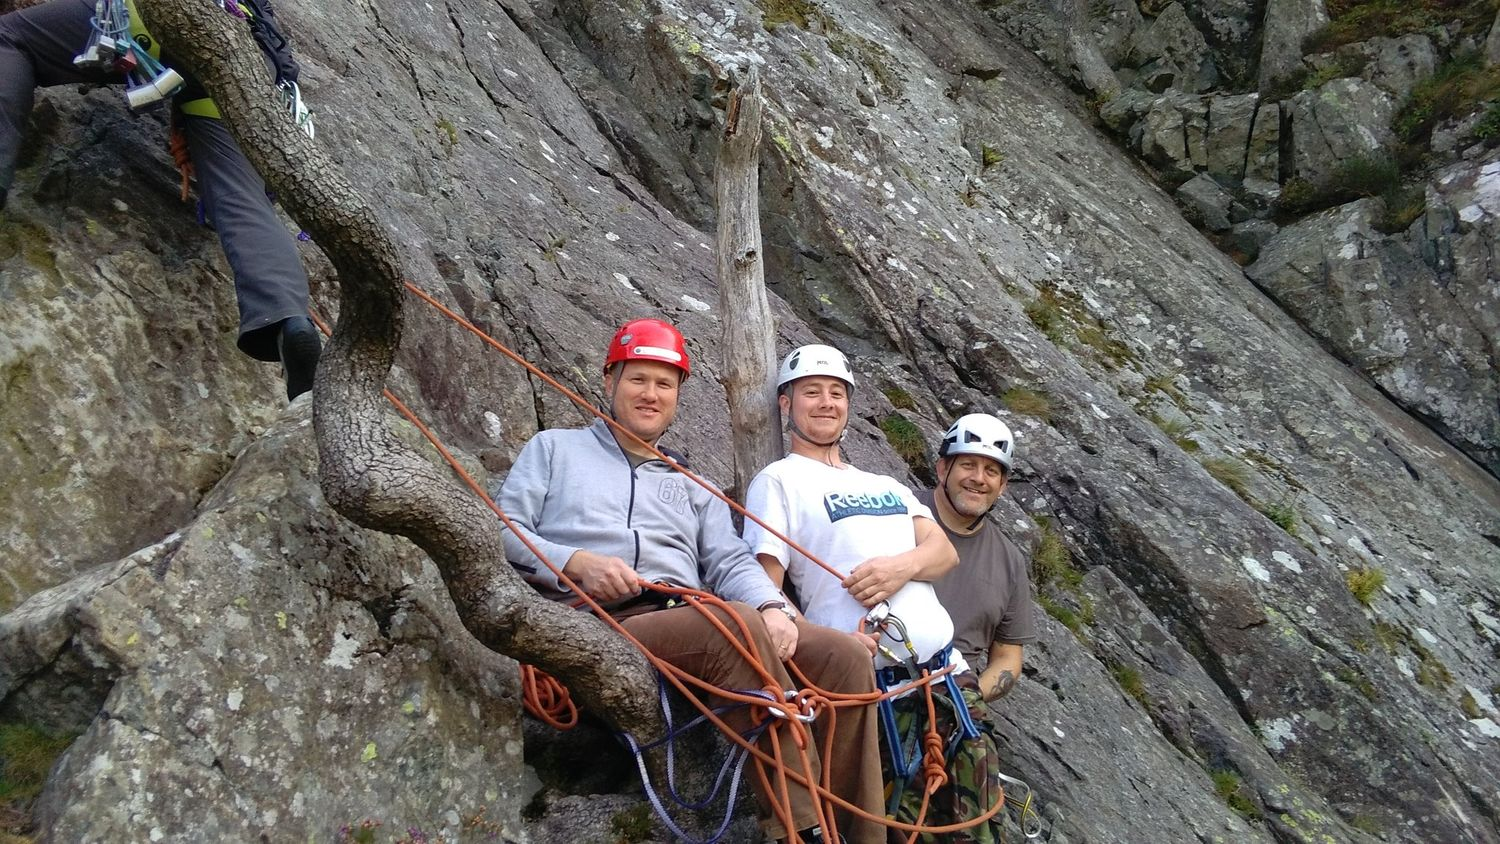 A group of clients belaying at the bottom of a single pitch rock route in the Lake District - Chris Ensoll Mountain Guide